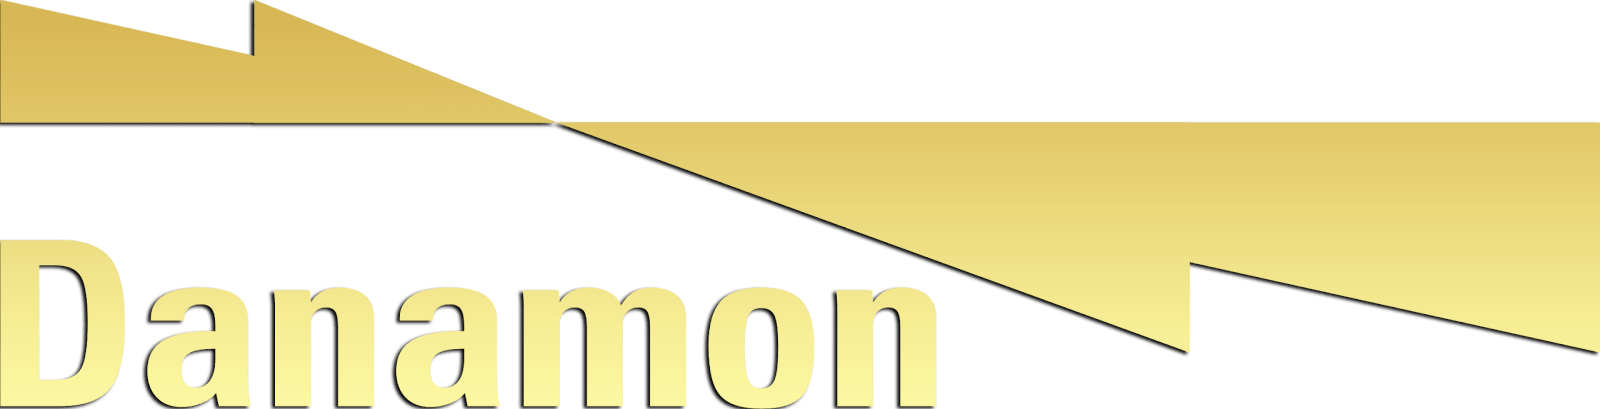 villabetting danamon logo